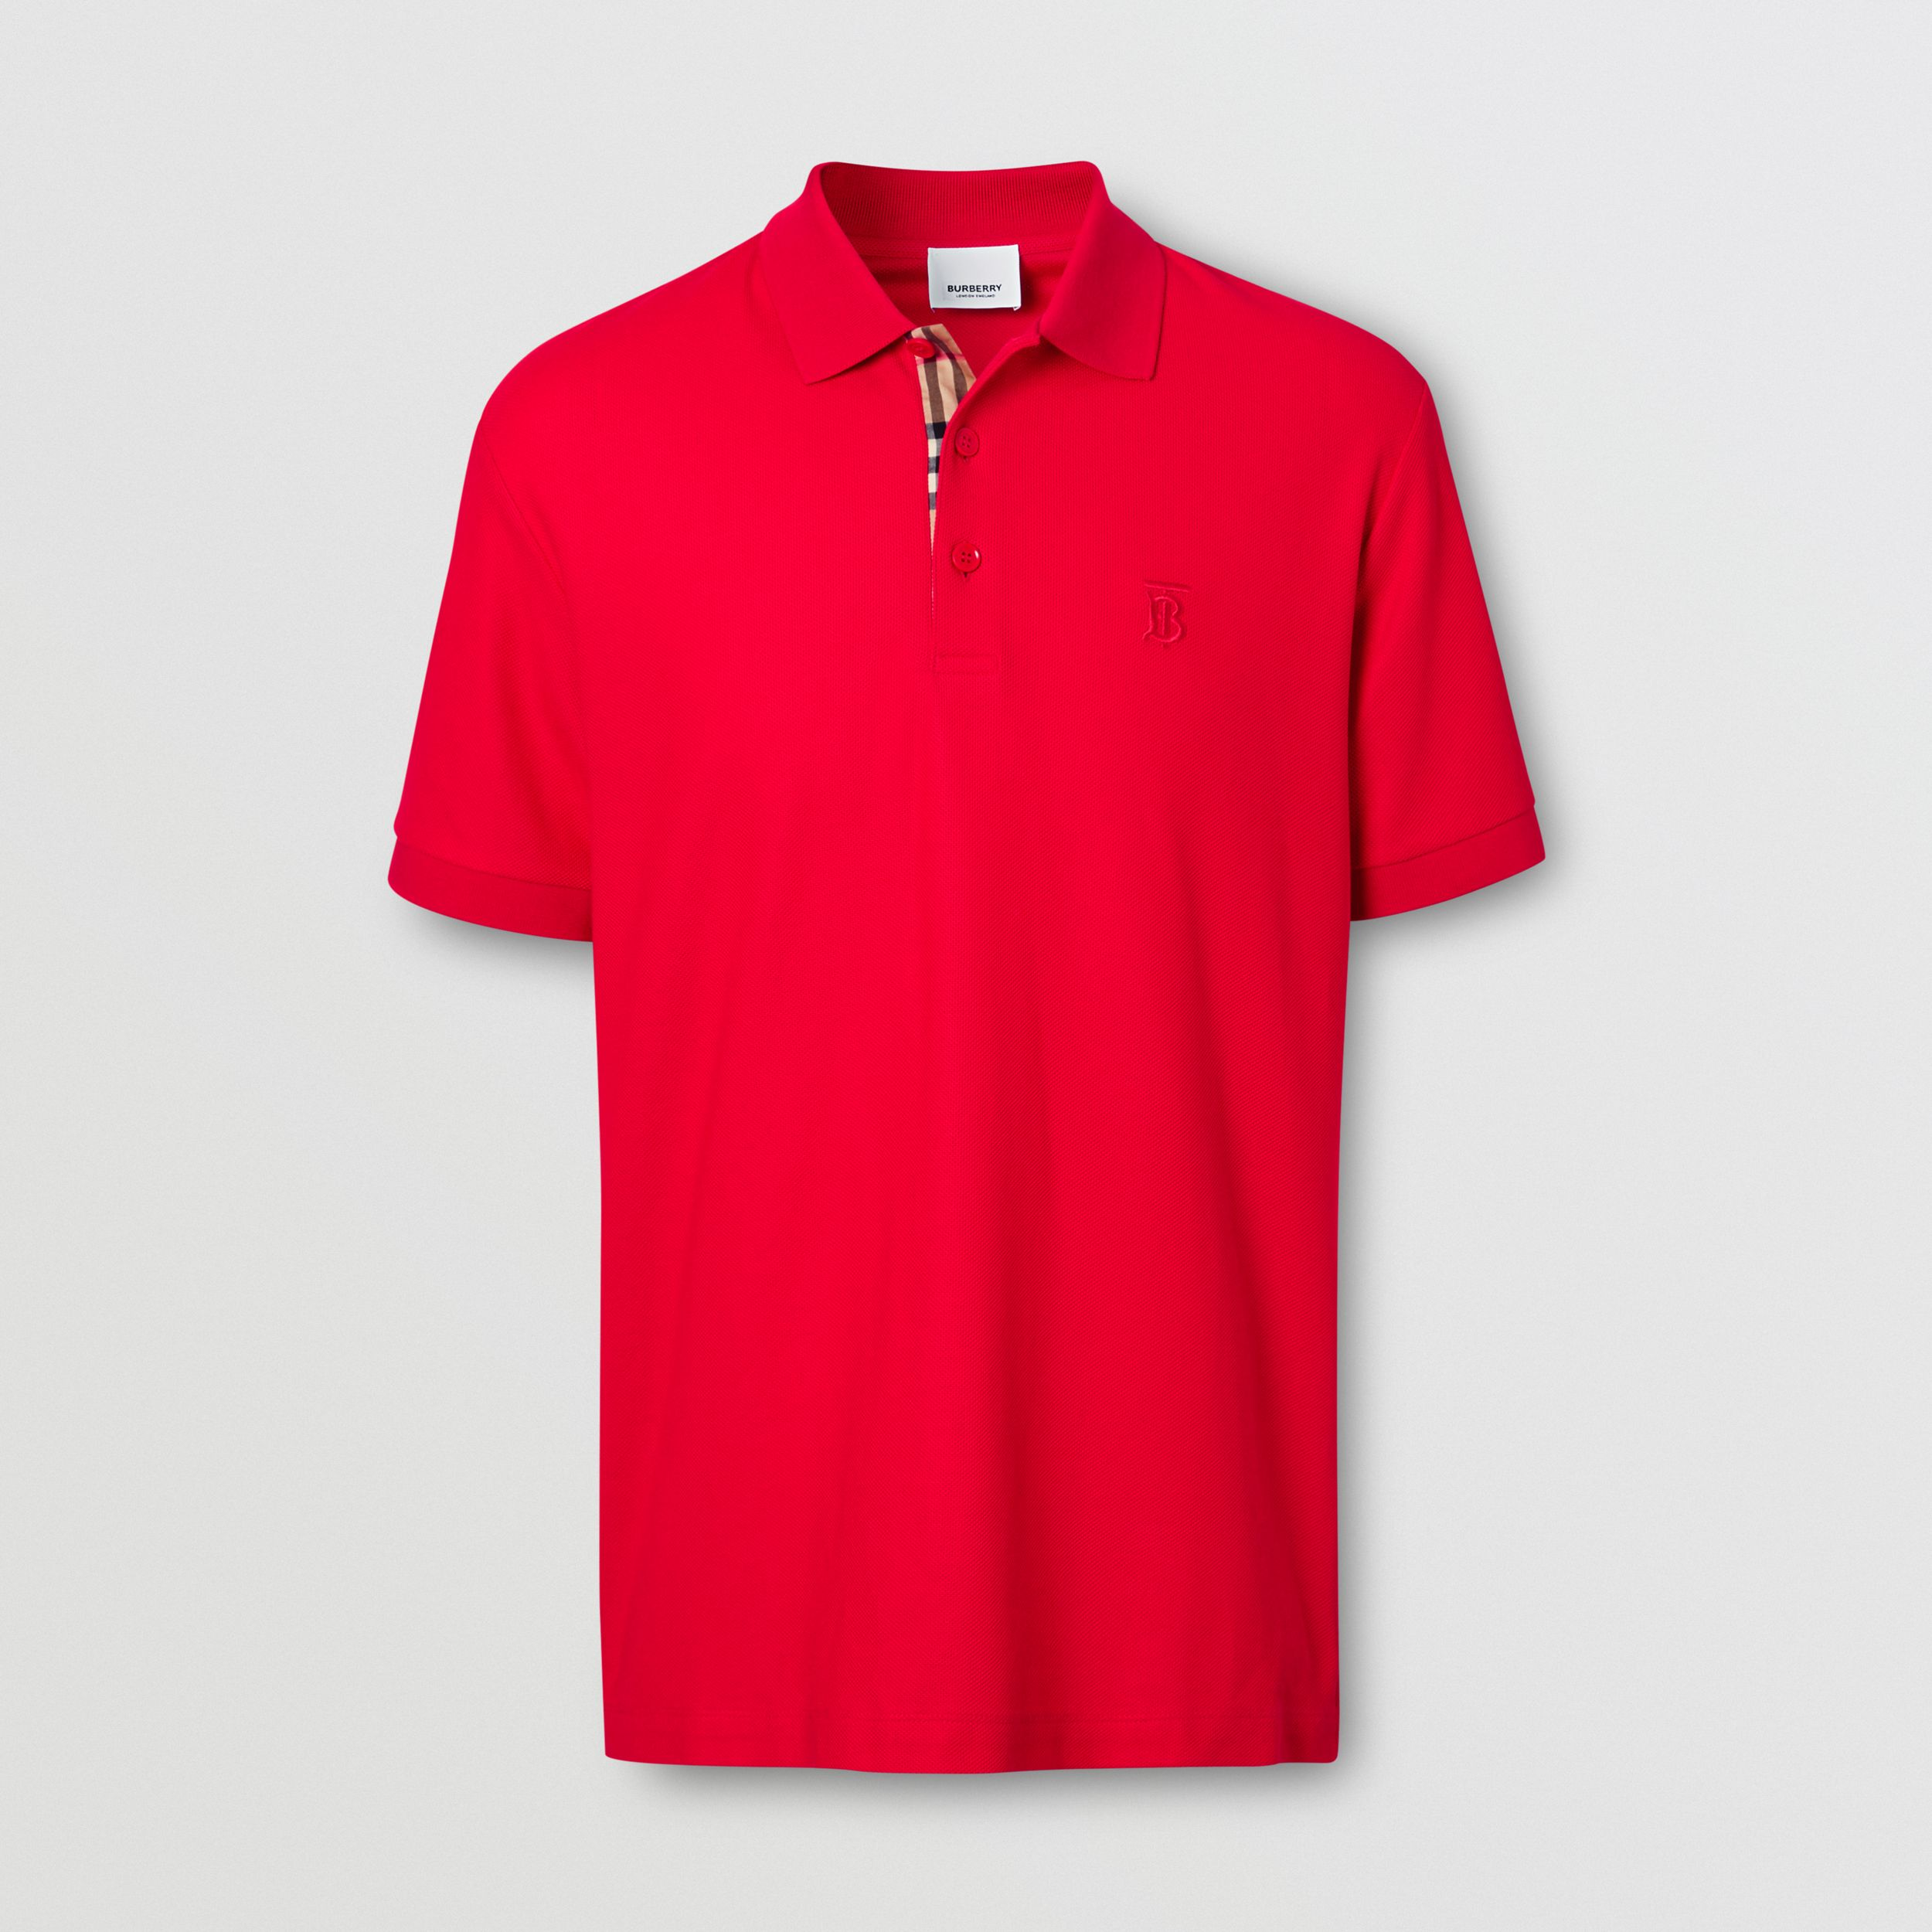 Monogram Motif Cotton Piqué Polo Shirt in Bright Red - Men | Burberry Canada - 4